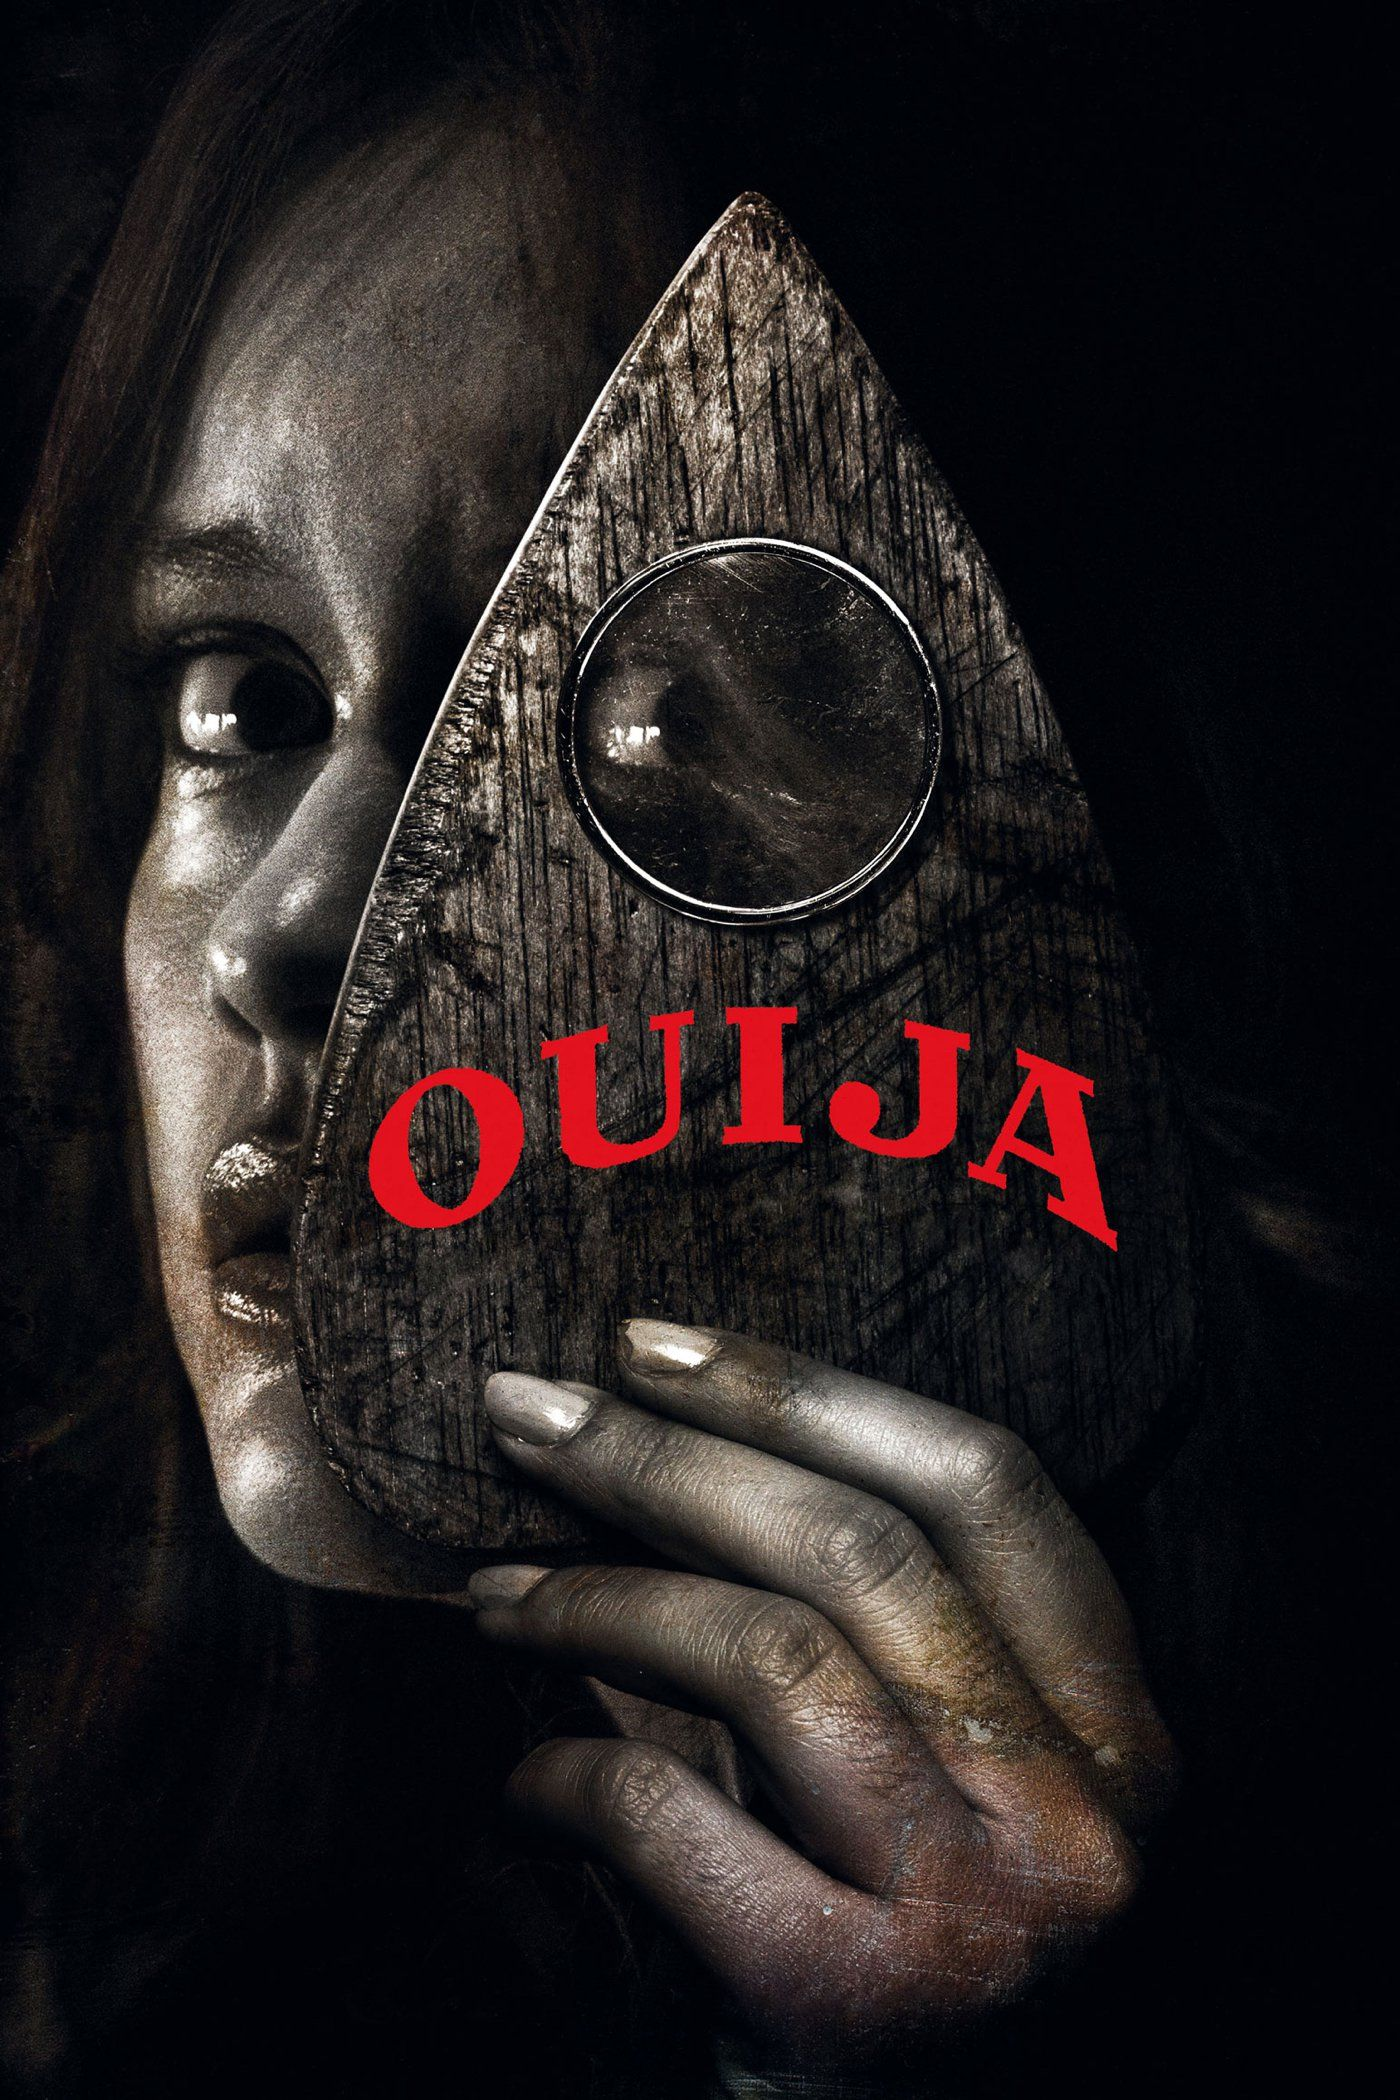 Pin By Horror Galore On Movies Ouija Full Movies Online Free Movies Online